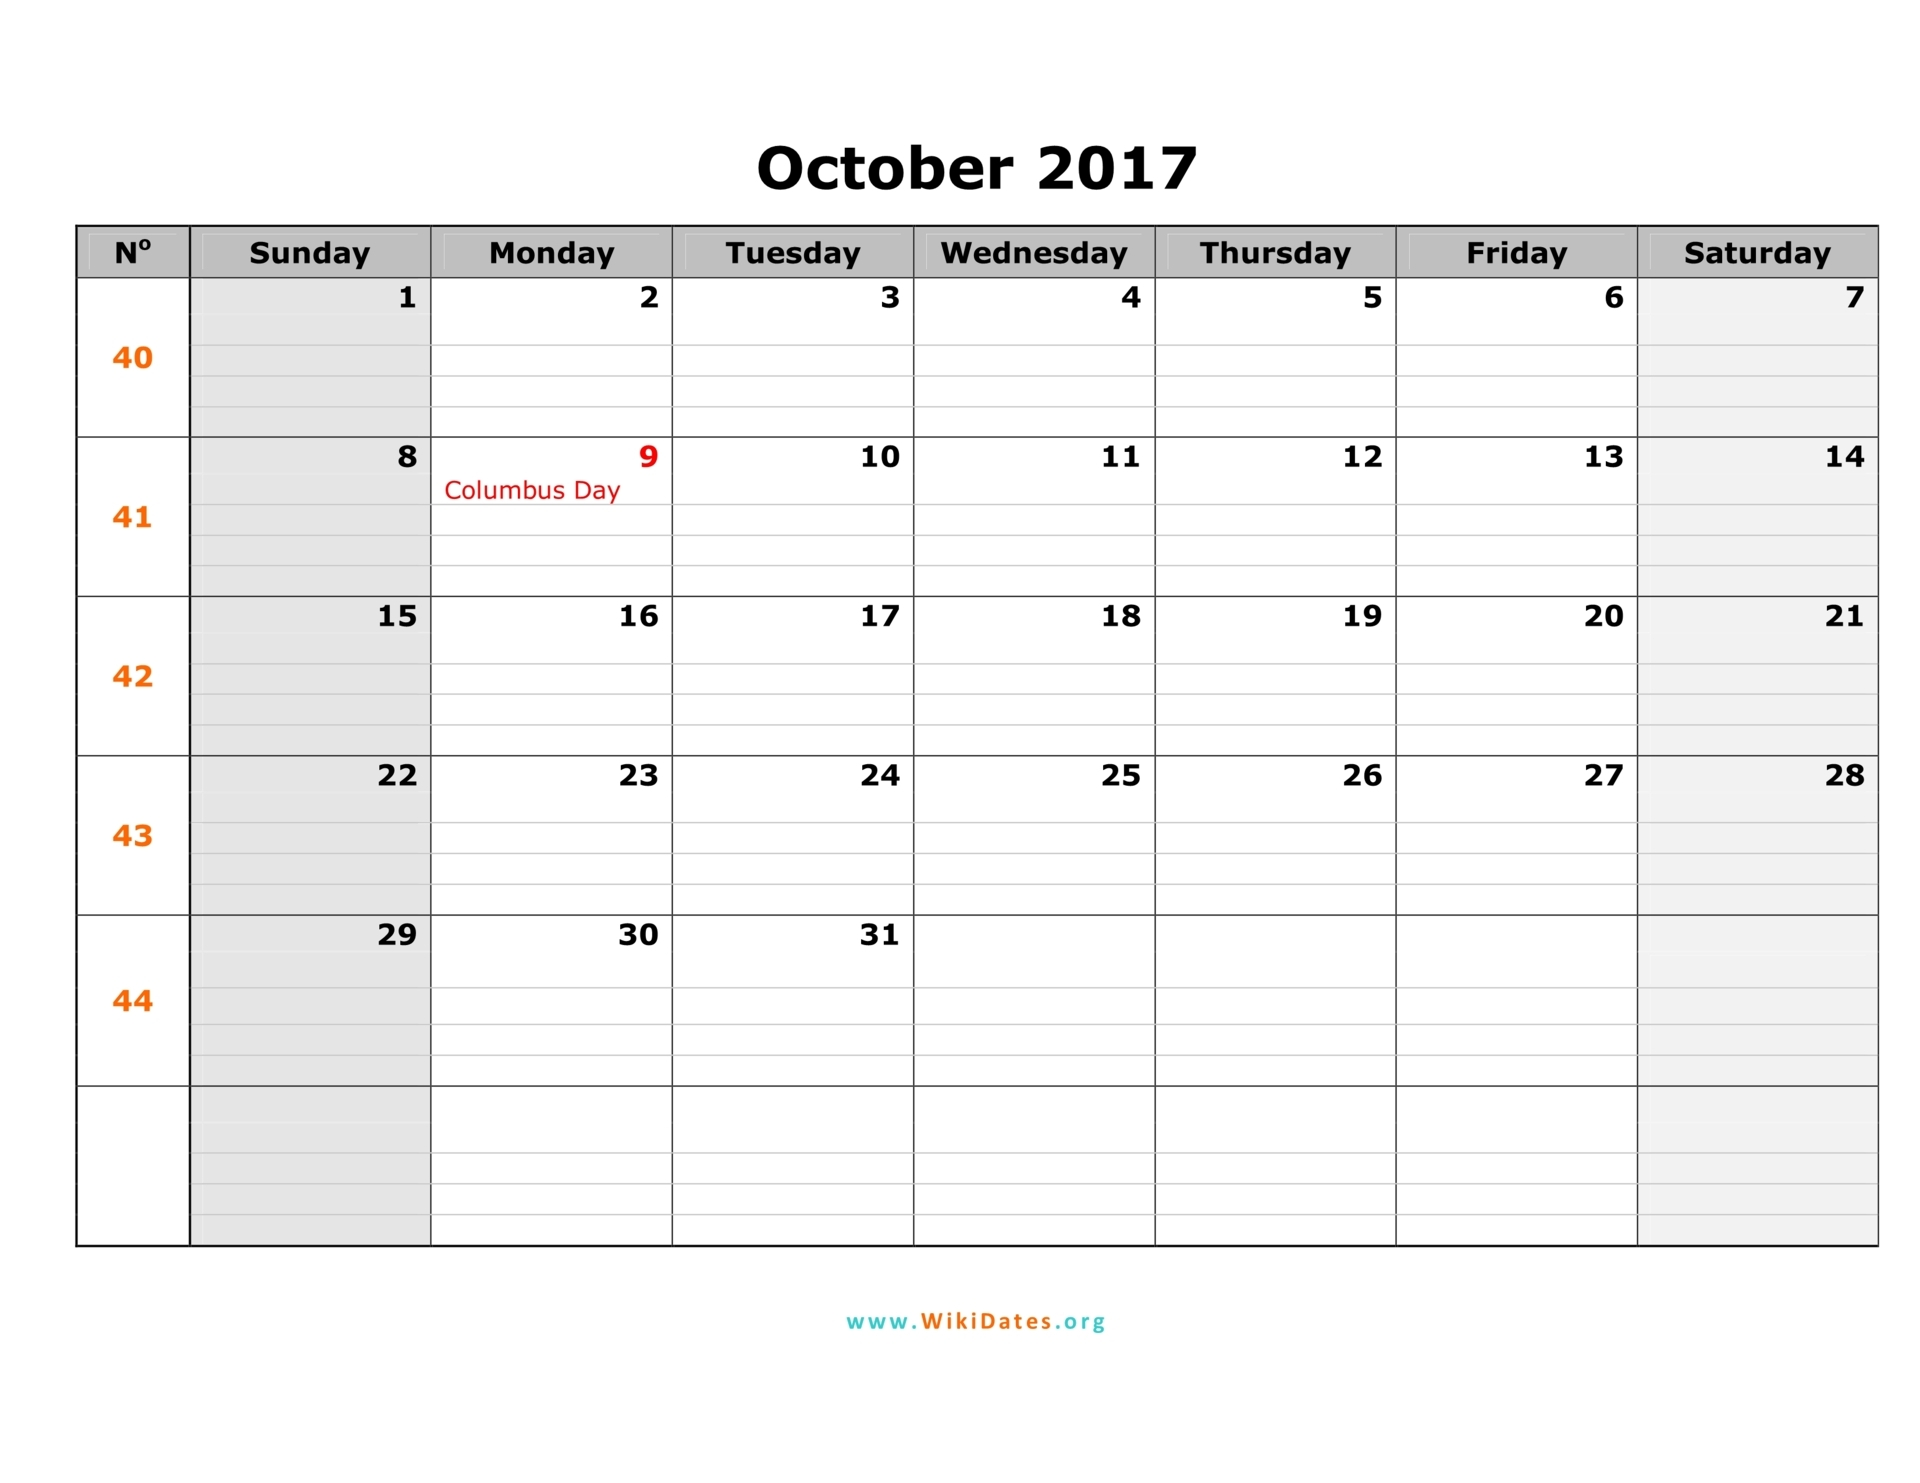 October 2017 Calendar with Holidays - United States